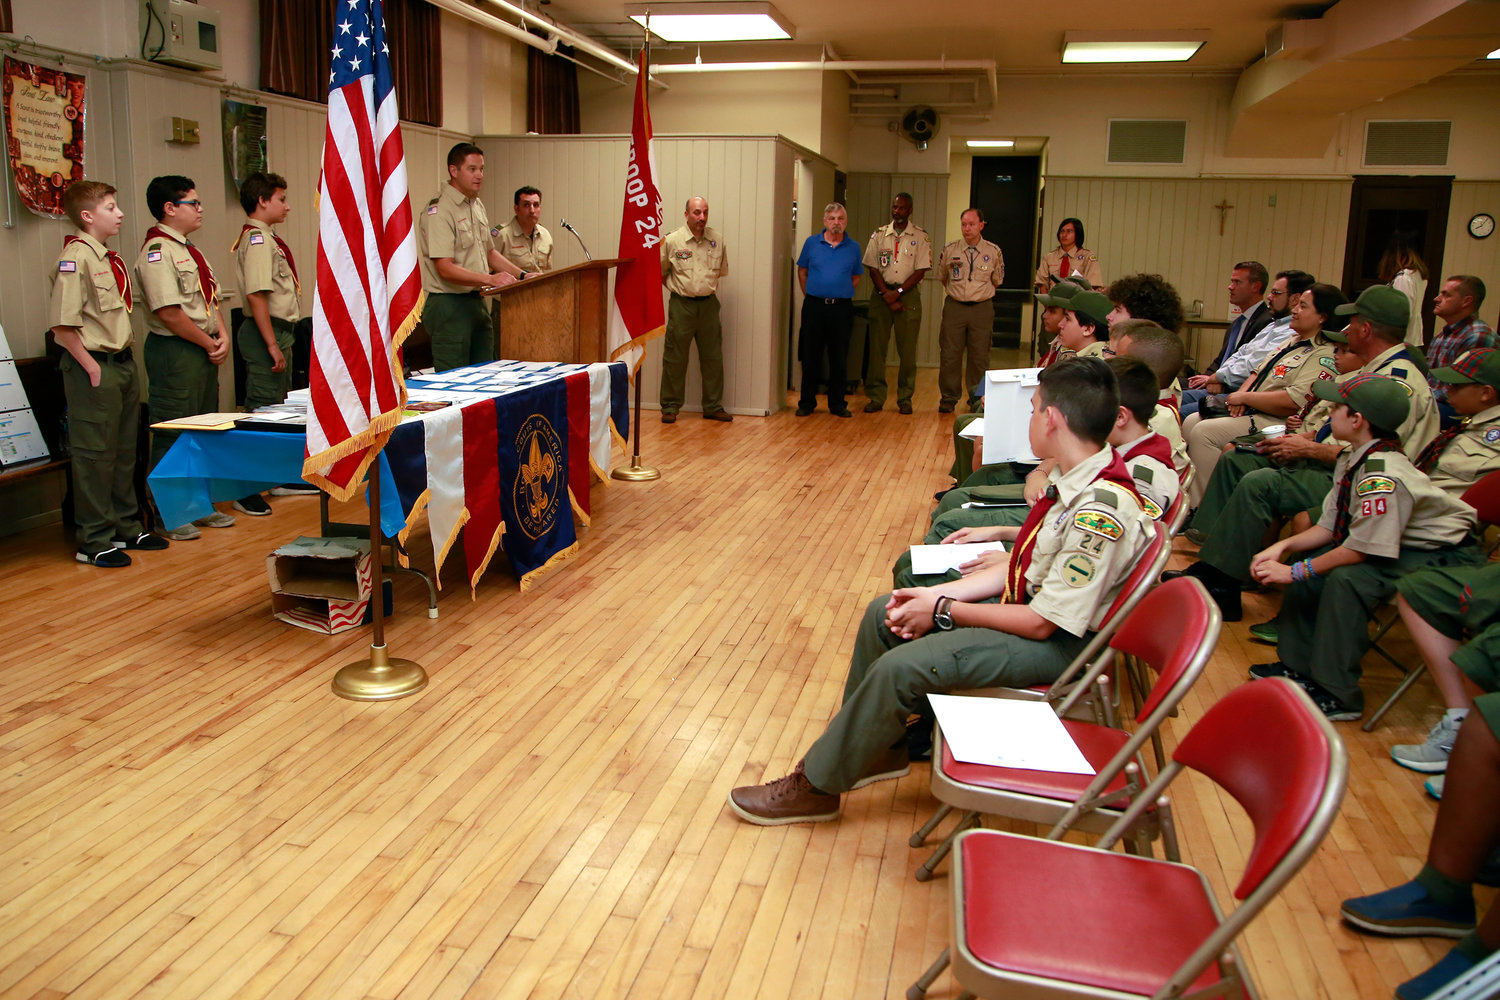 Each Boy Scout was recognized for their community service.